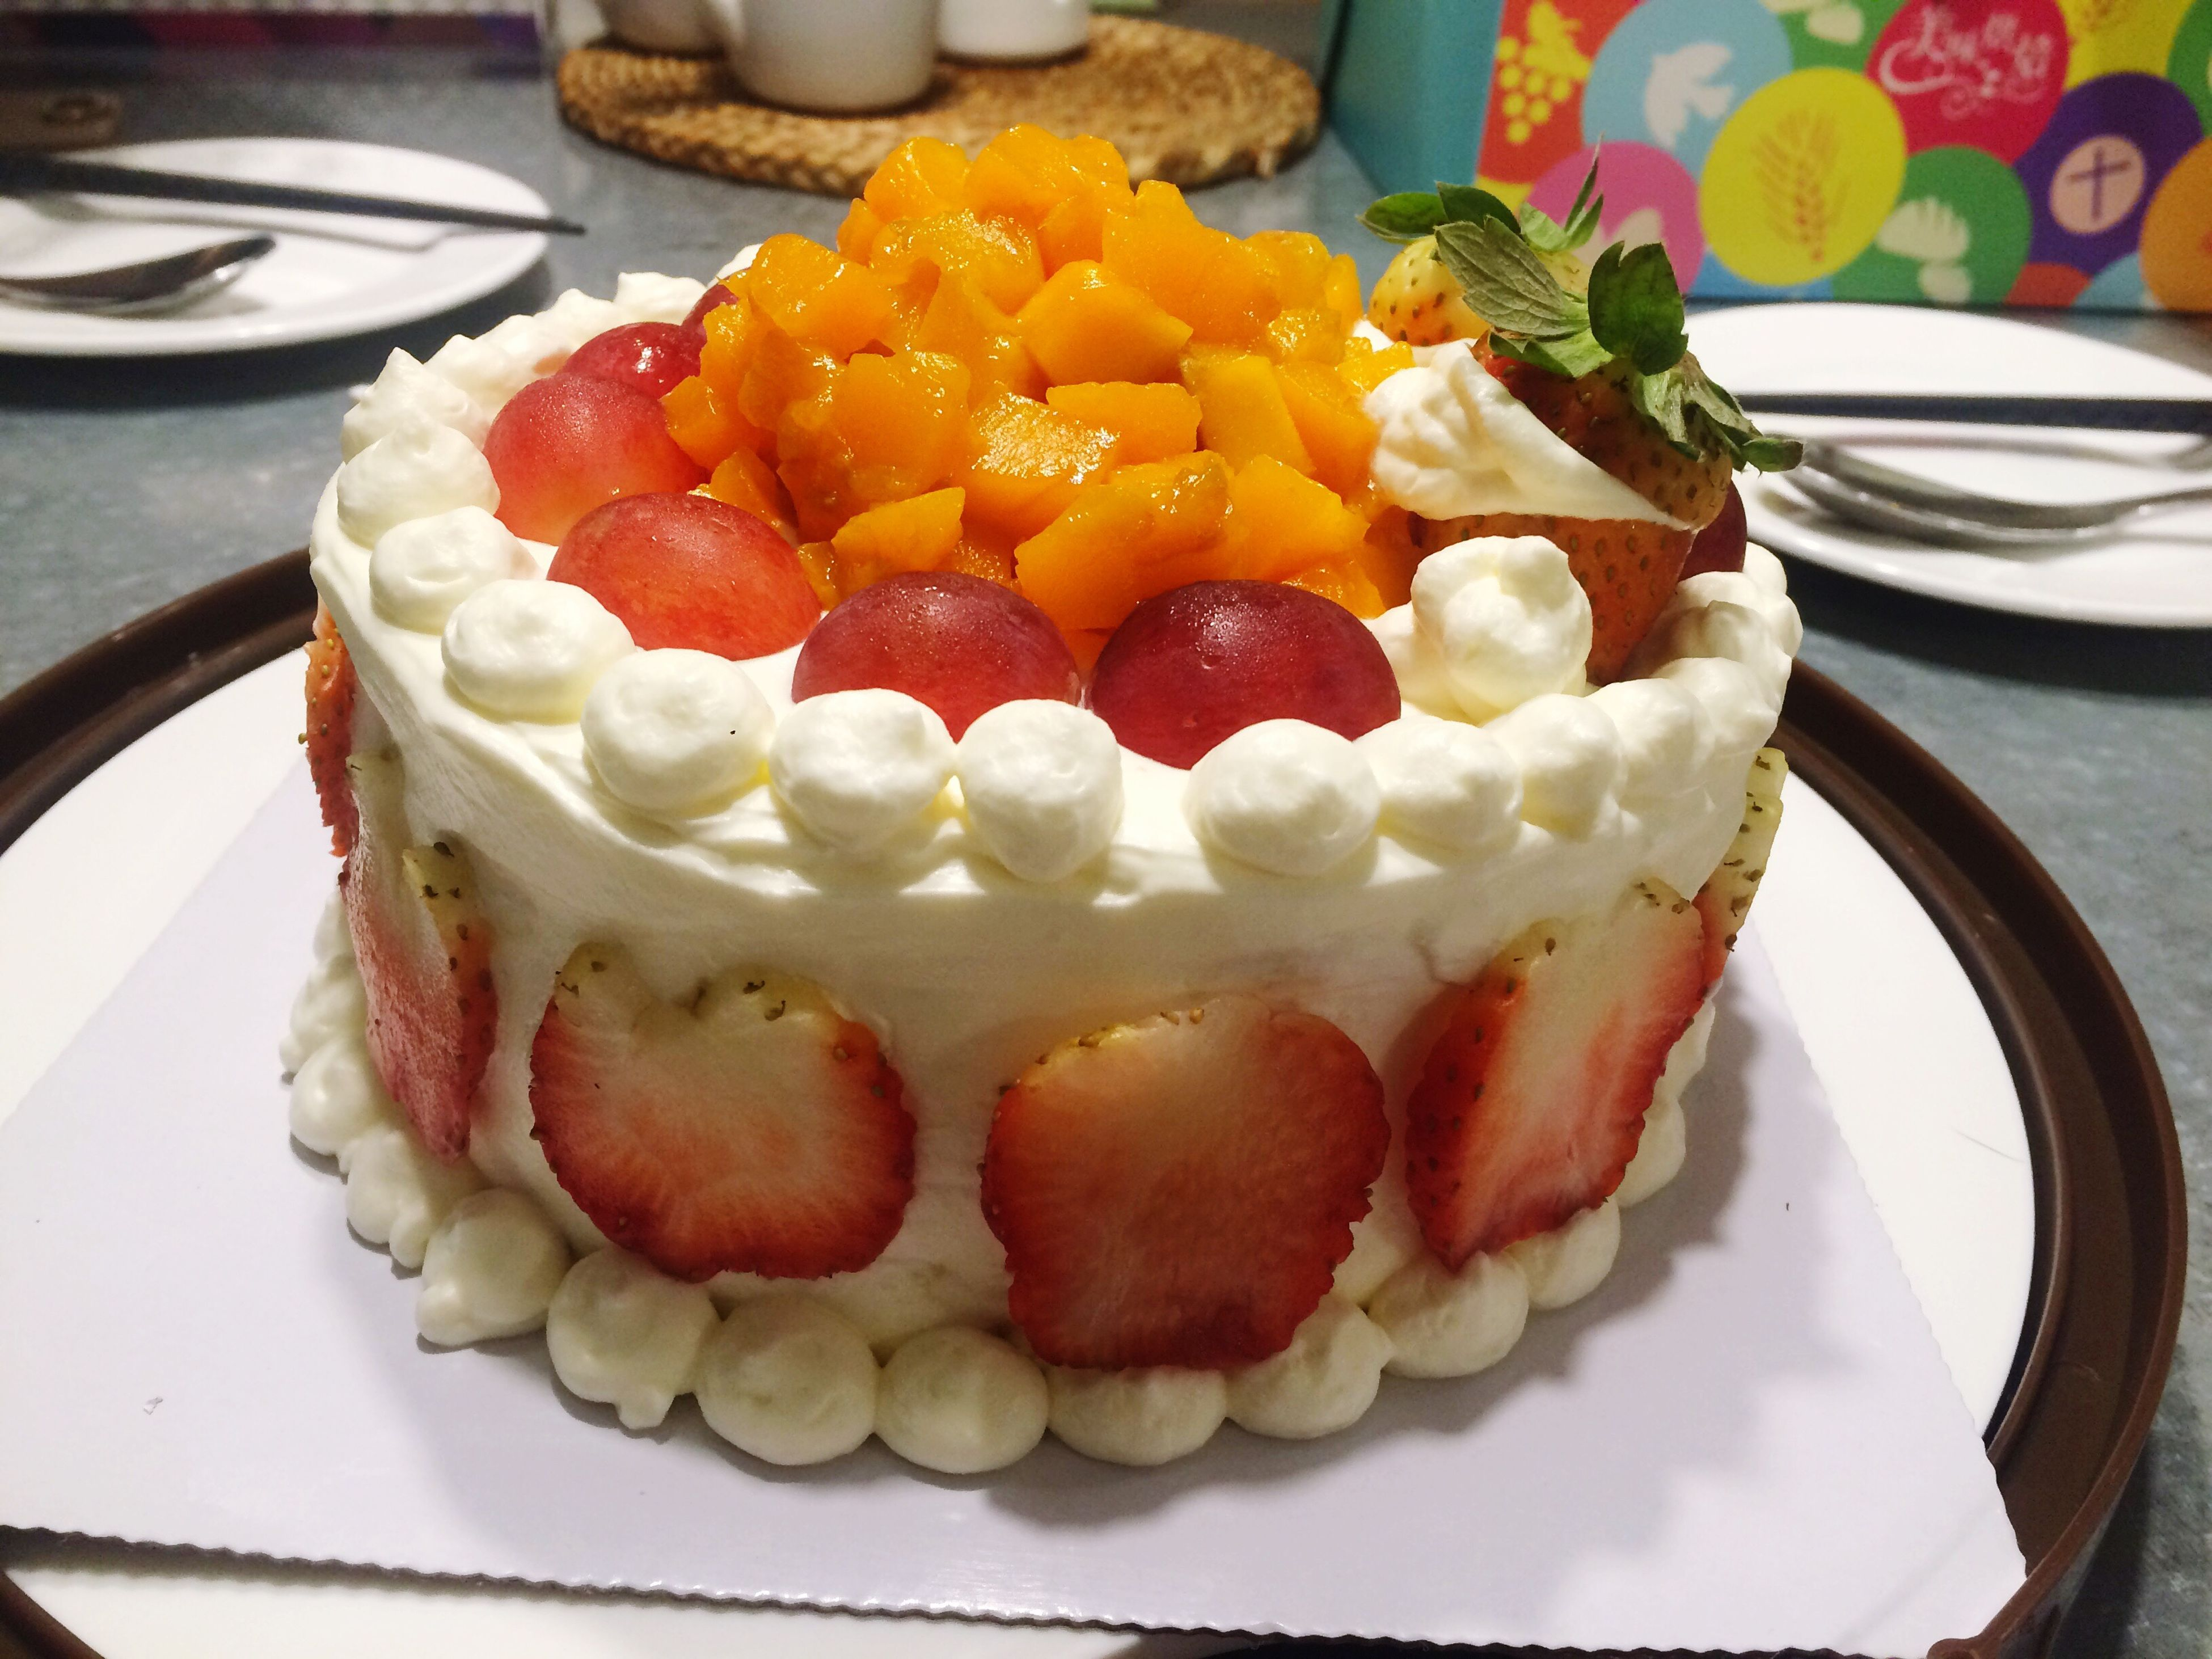 food and drink, food, freshness, sweet food, indoors, dessert, ready-to-eat, indulgence, plate, fruit, unhealthy eating, still life, strawberry, cake, temptation, table, raspberry, serving size, high angle view, close-up